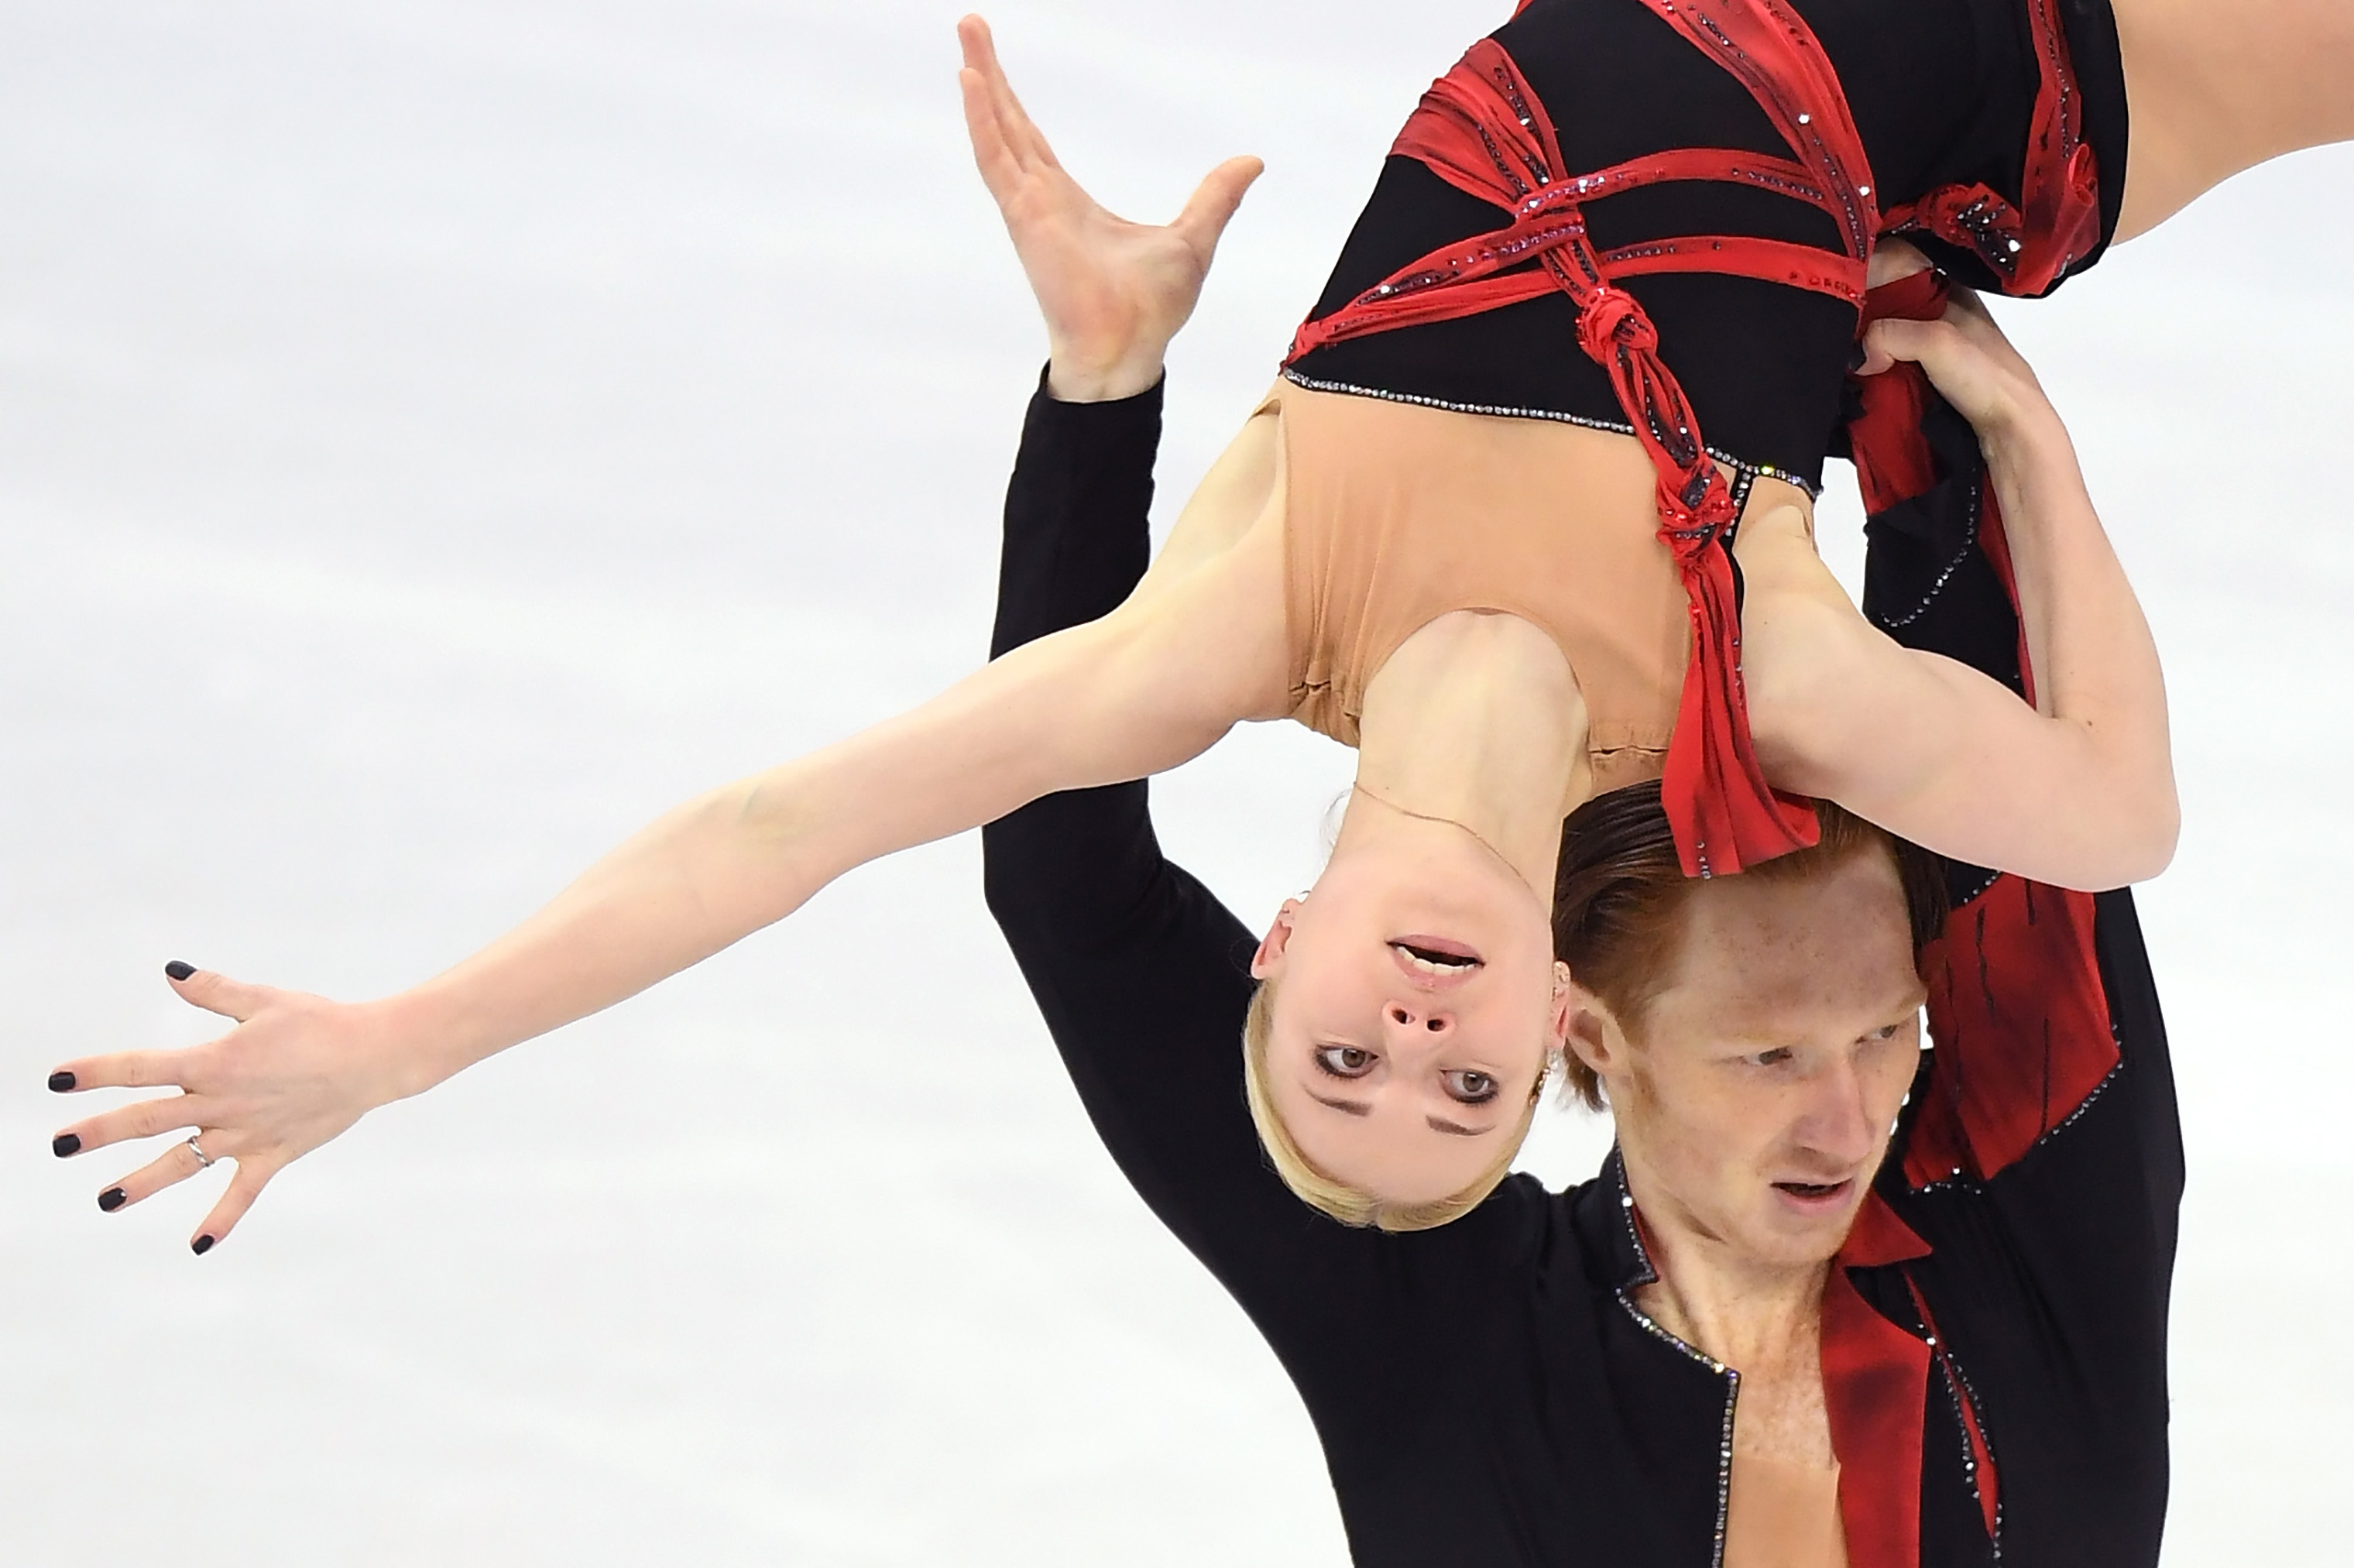 Evgenia Tarasova and Vladimir Morozov, Olympic Athletes from Russia, compete in the Figure Skating Team Event during the PyeongChang 2018 Winter Olympic Games on Feb. 9, 2018.